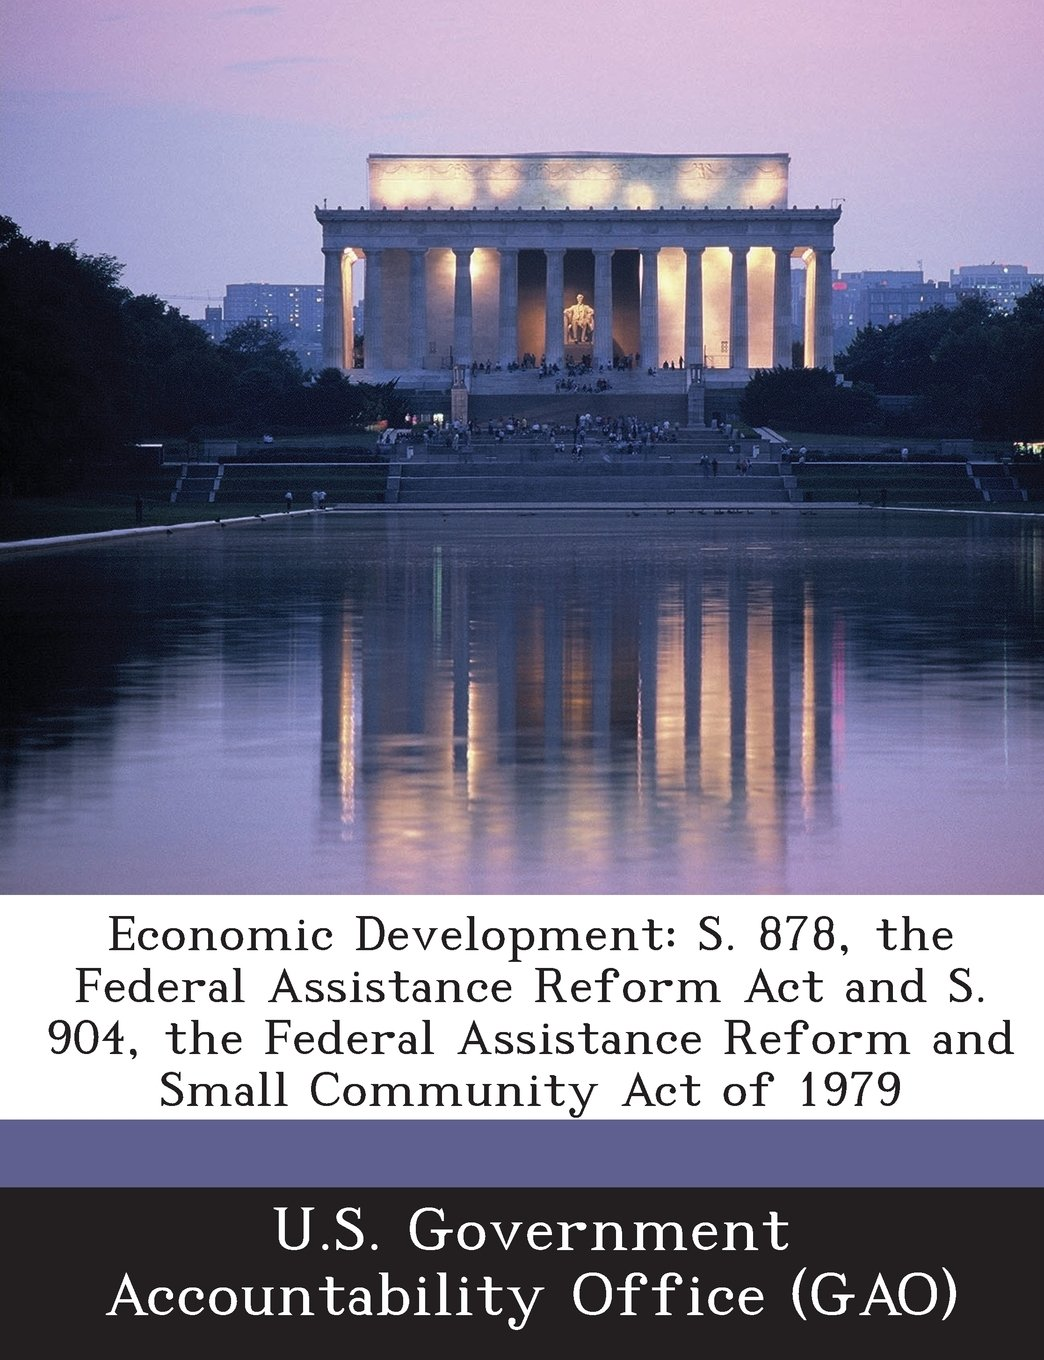 Download Economic Development: S. 878, the Federal Assistance Reform ACT and S. 904, the Federal Assistance Reform and Small Community Act of 1979 PDF